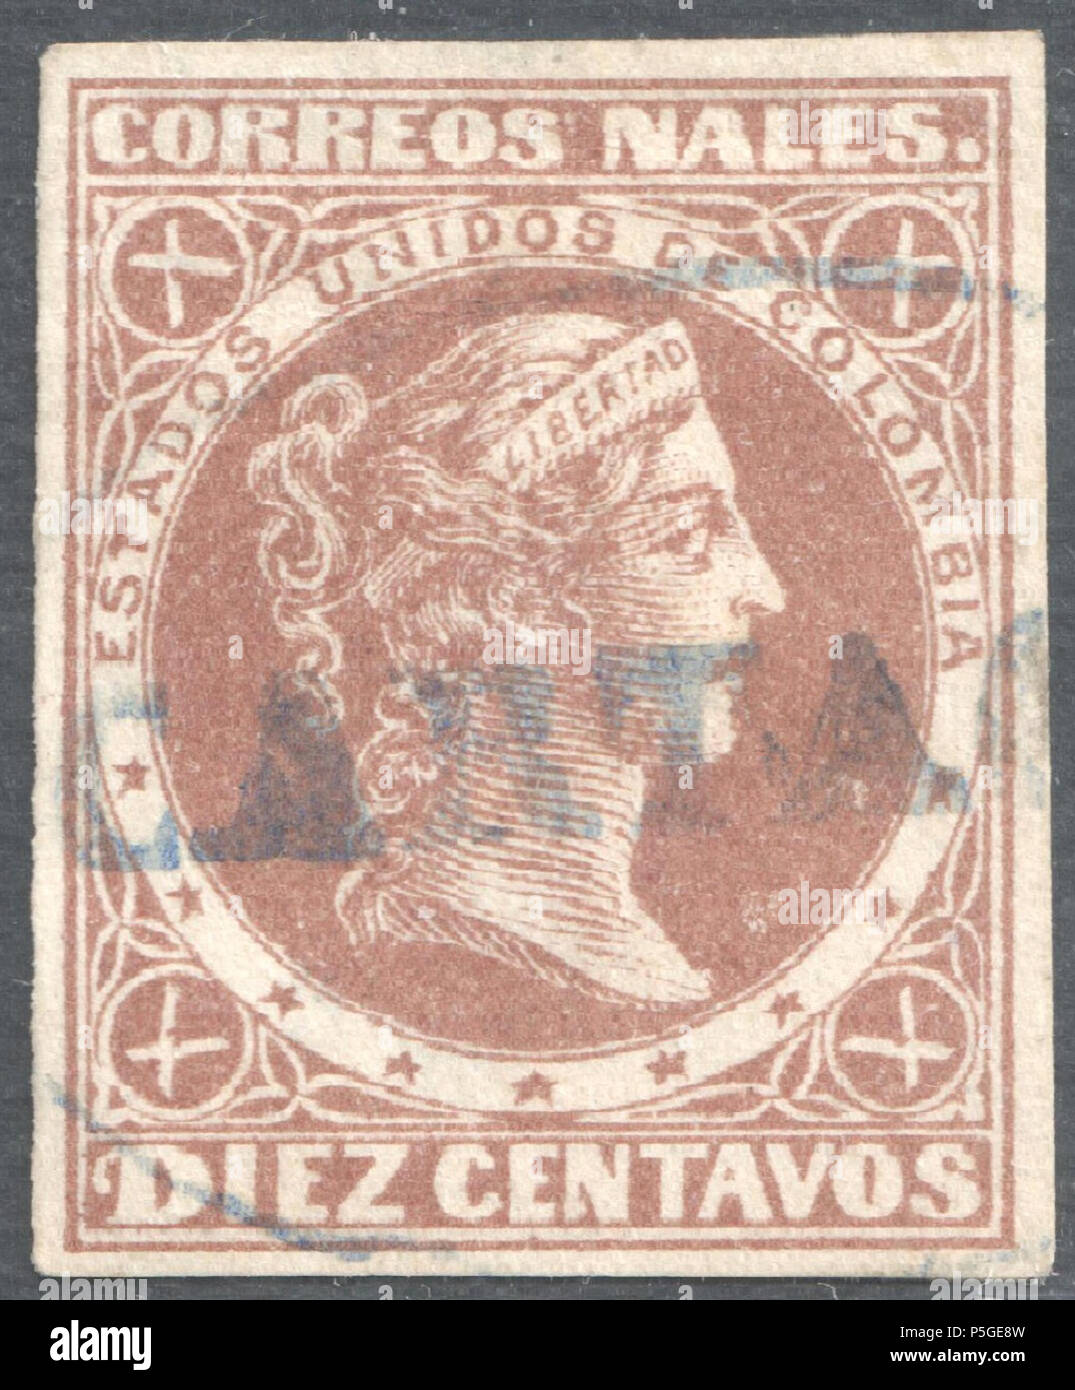 N/A. English: Colombia 1877 Sc74, postmarked by oval 'CARTA(GENA)'. 1874. Post of Colombia 367 Colombia 1877 Sc74 used Cartagena - Stock Image